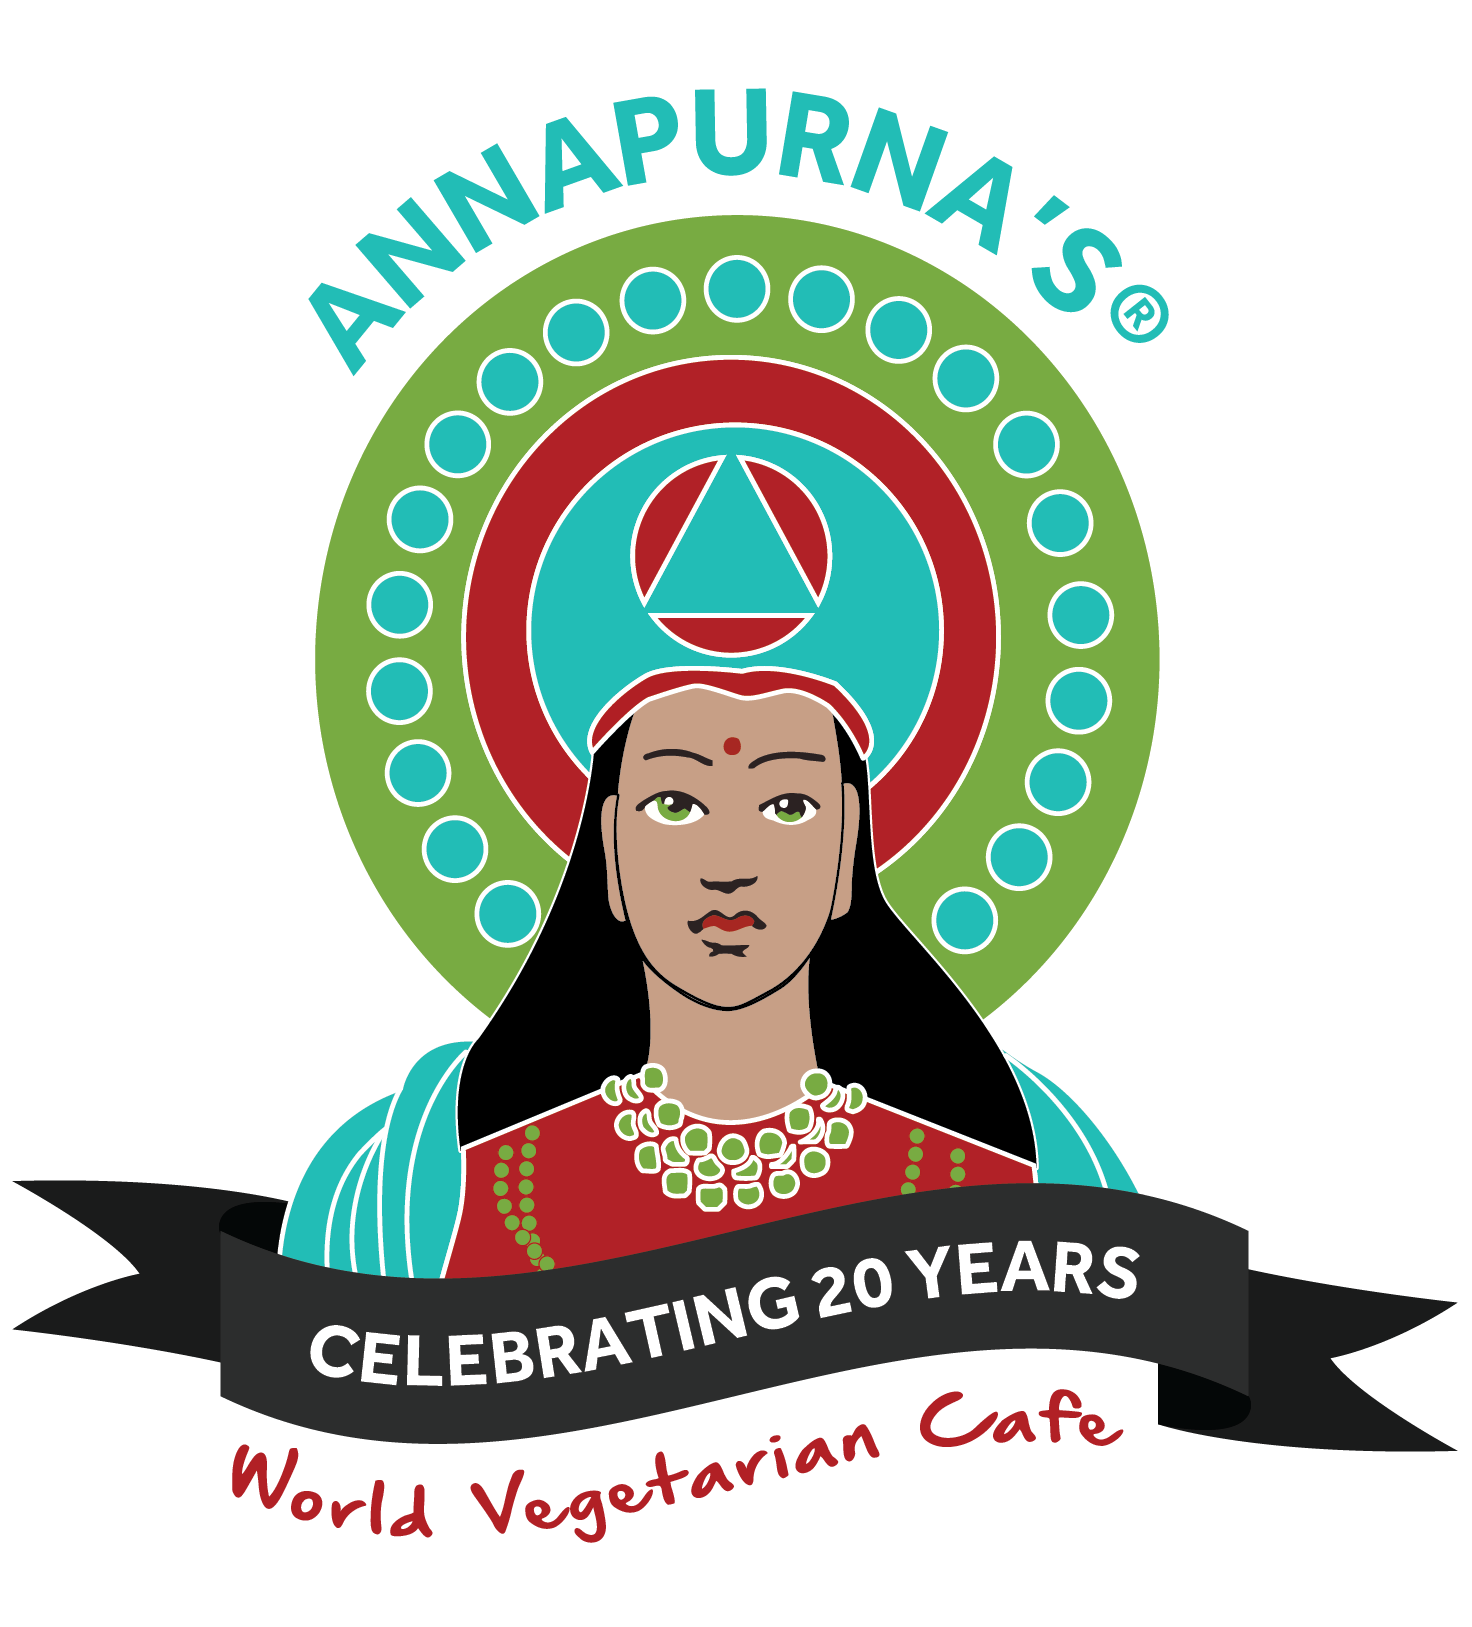 Upcoming events - Annapurna's World Vegetarian Café